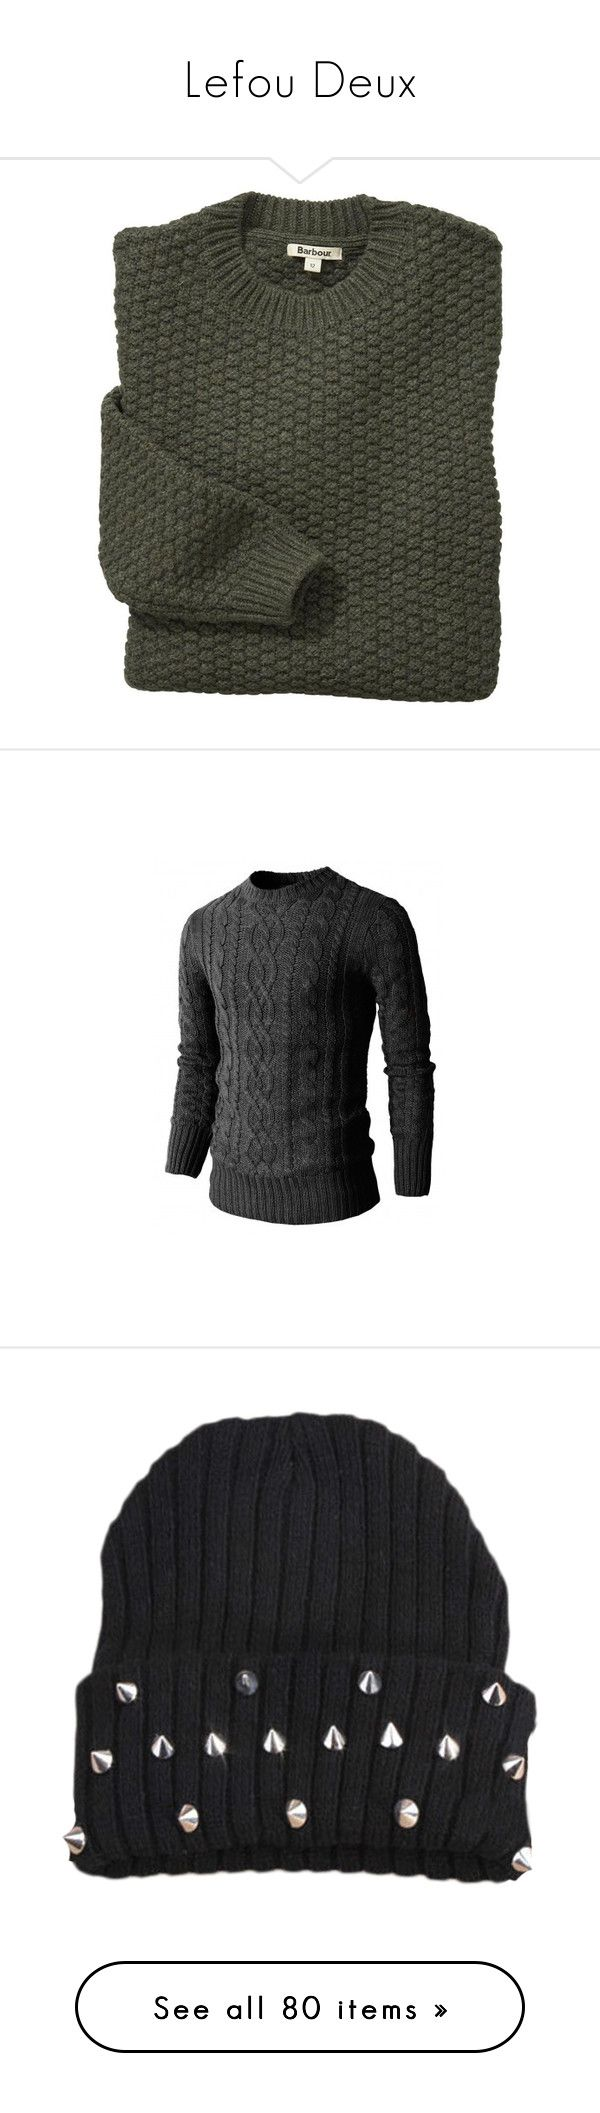 """""""Lefou Deux"""" by ekw99 ❤ liked on Polyvore featuring MK, Descendants, minionkid, tops, sweaters, shirts, jumpers, barbour shirts, sport shirts and sports shirts"""